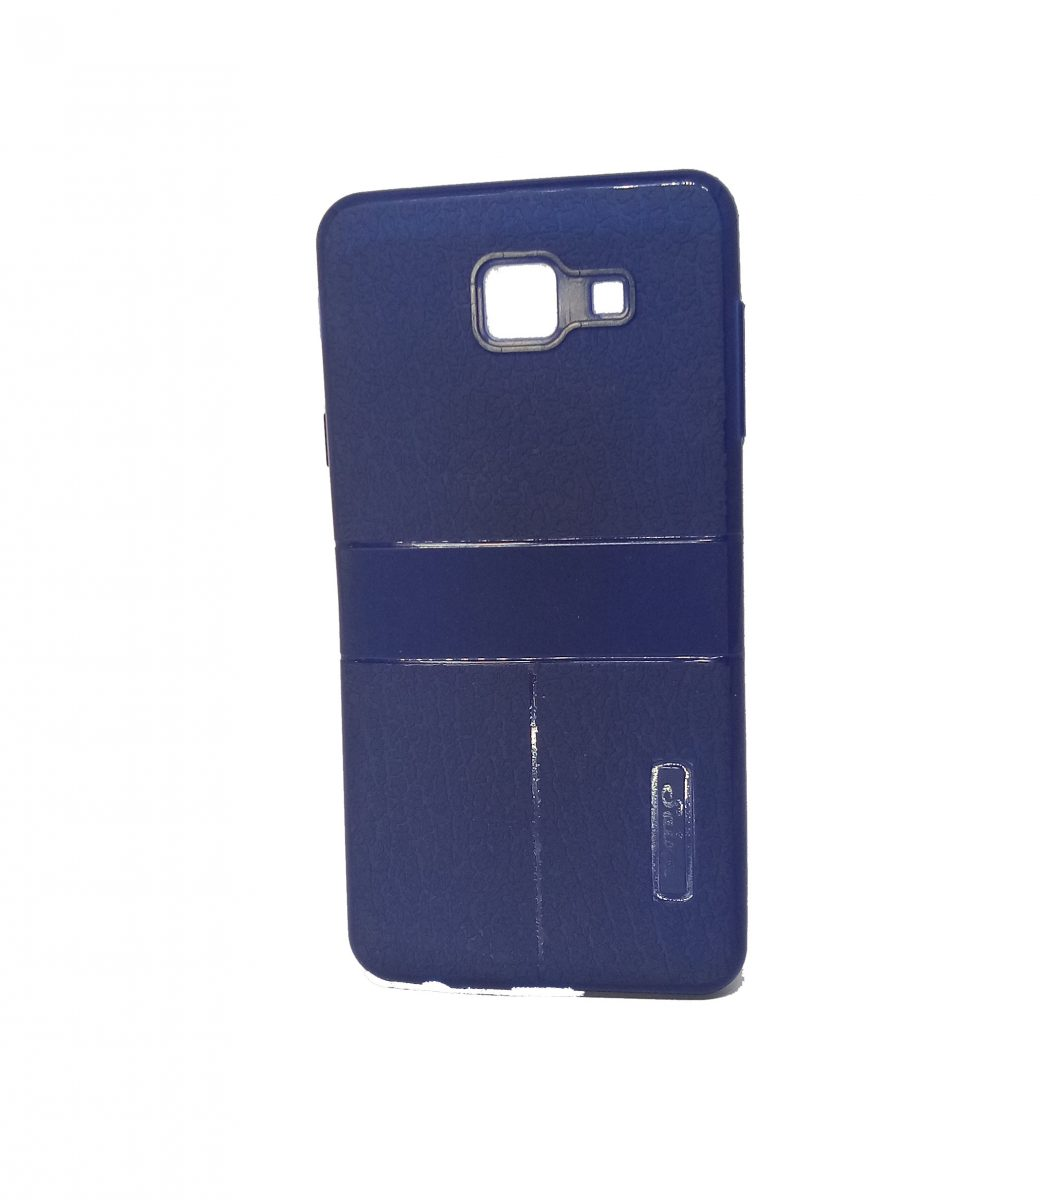 Samsung J7 Max Back cover